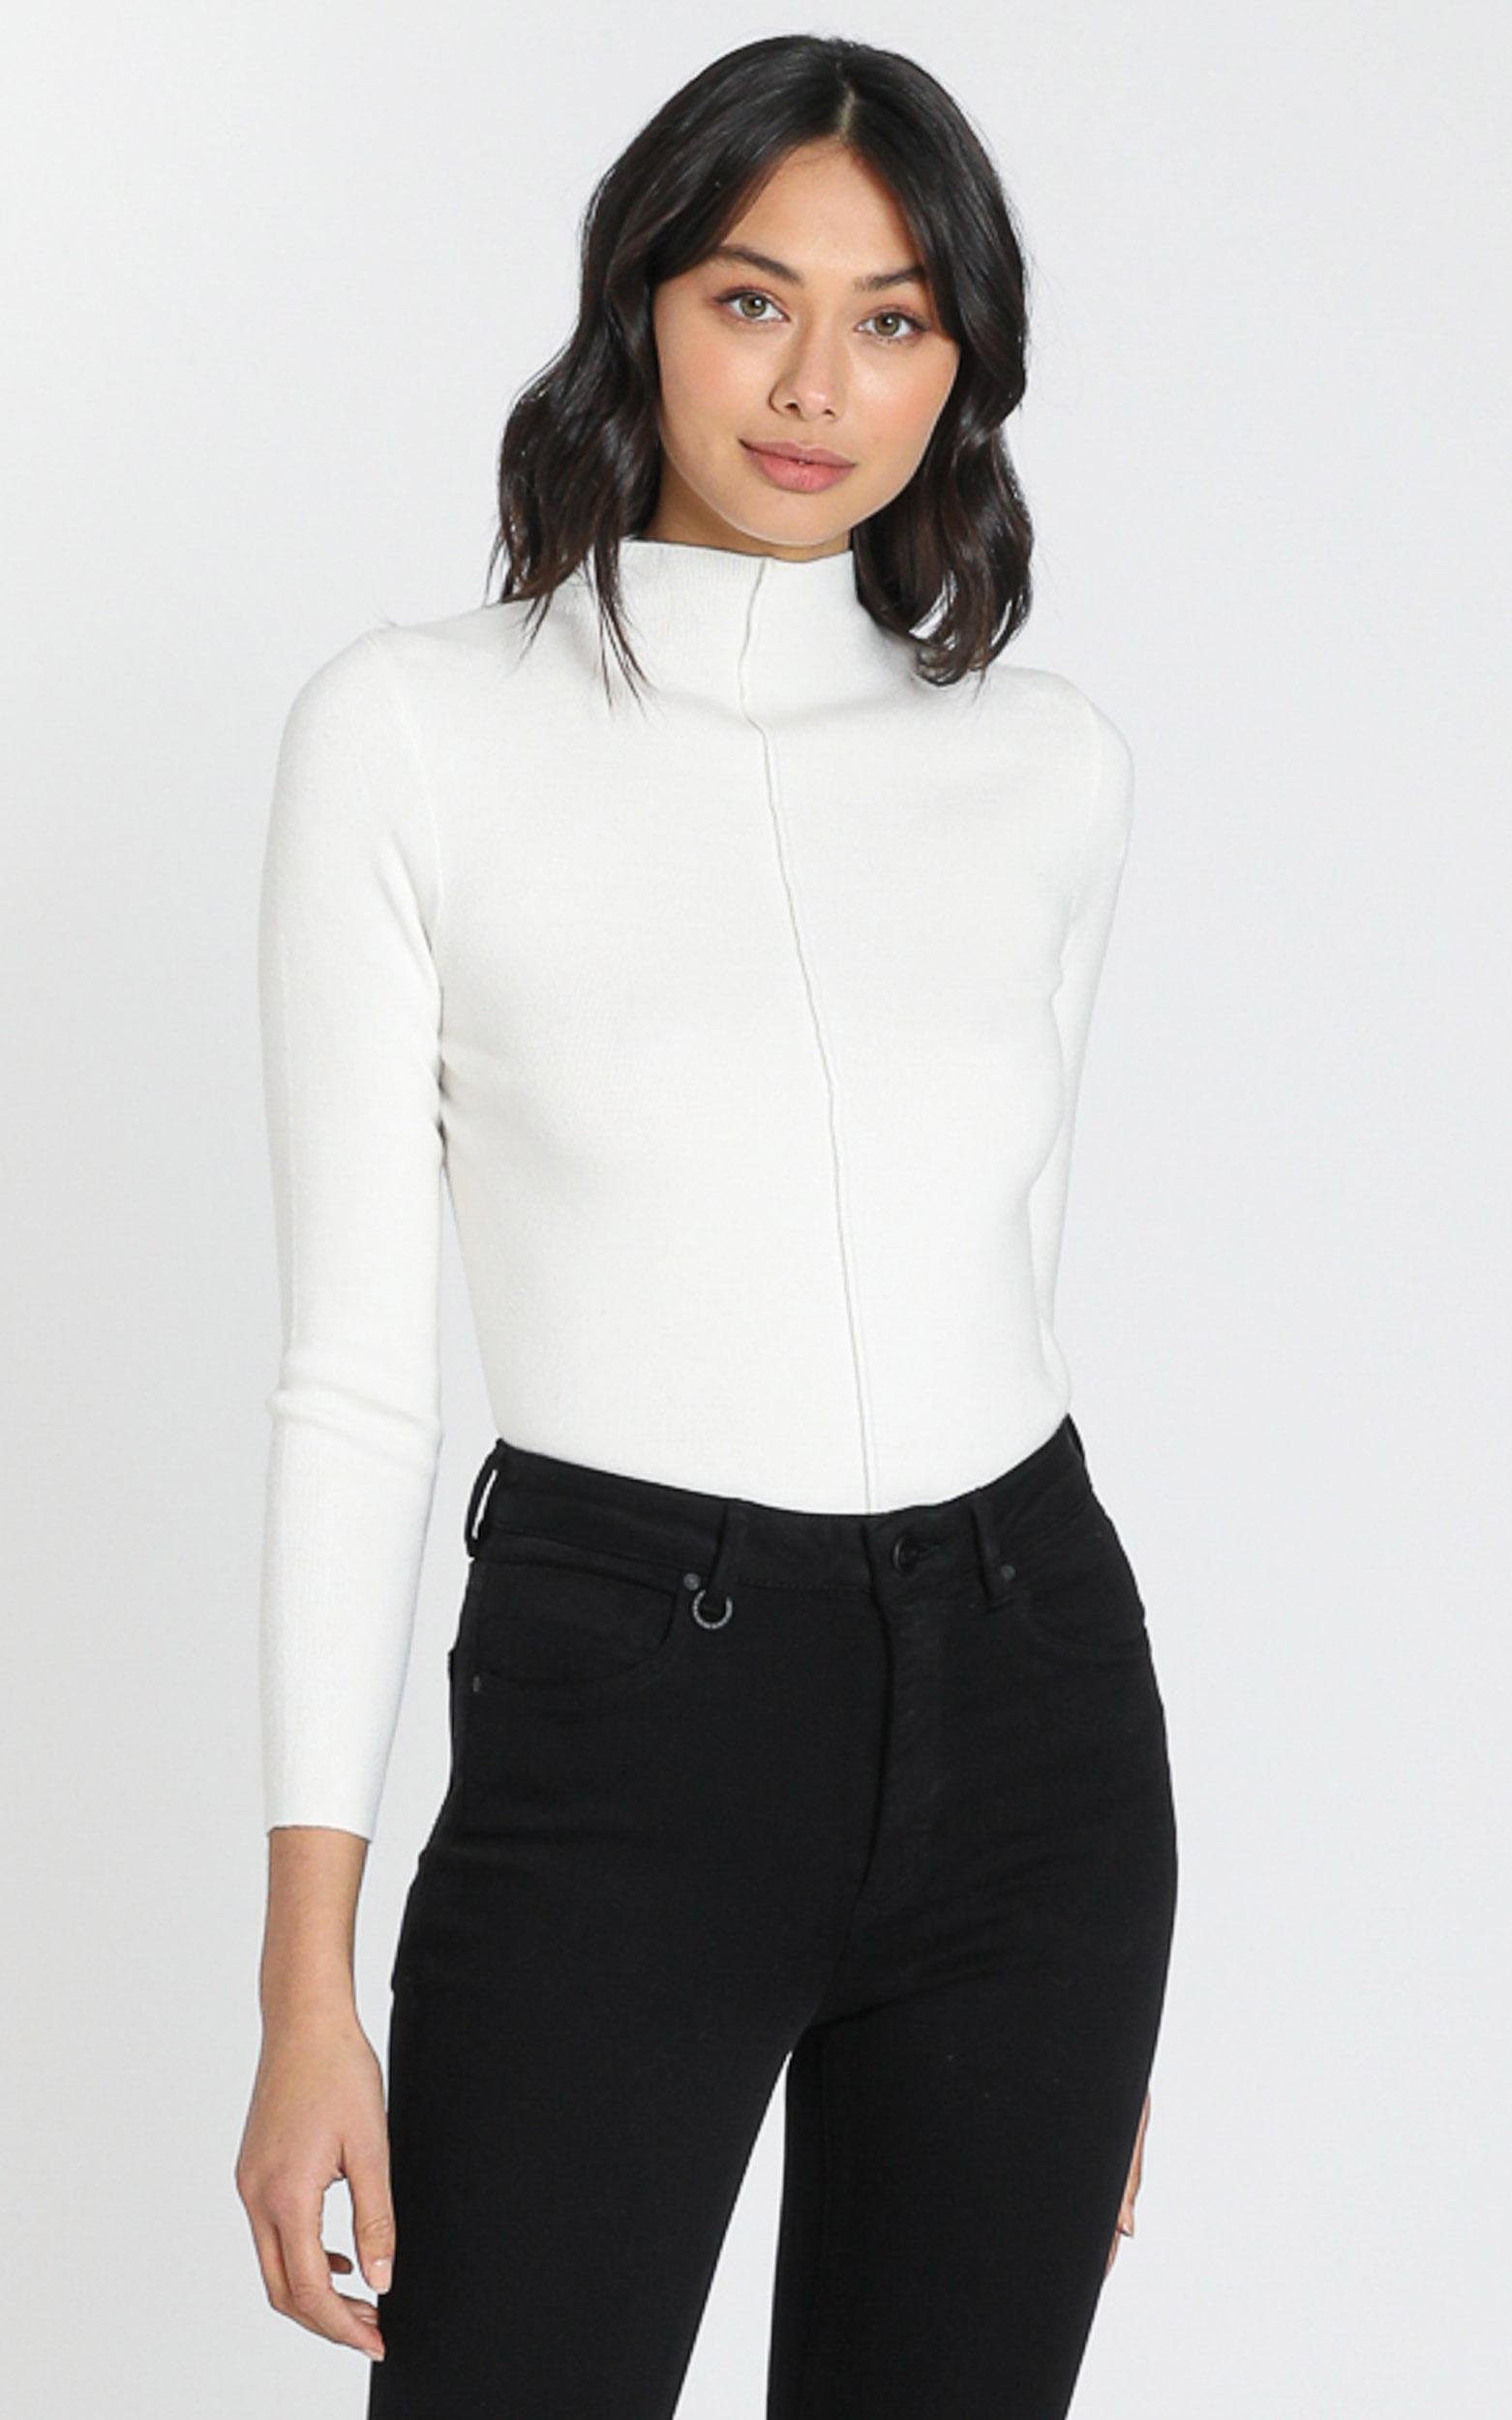 Camden Knit Top in White - S/M, White, hi-res image number null